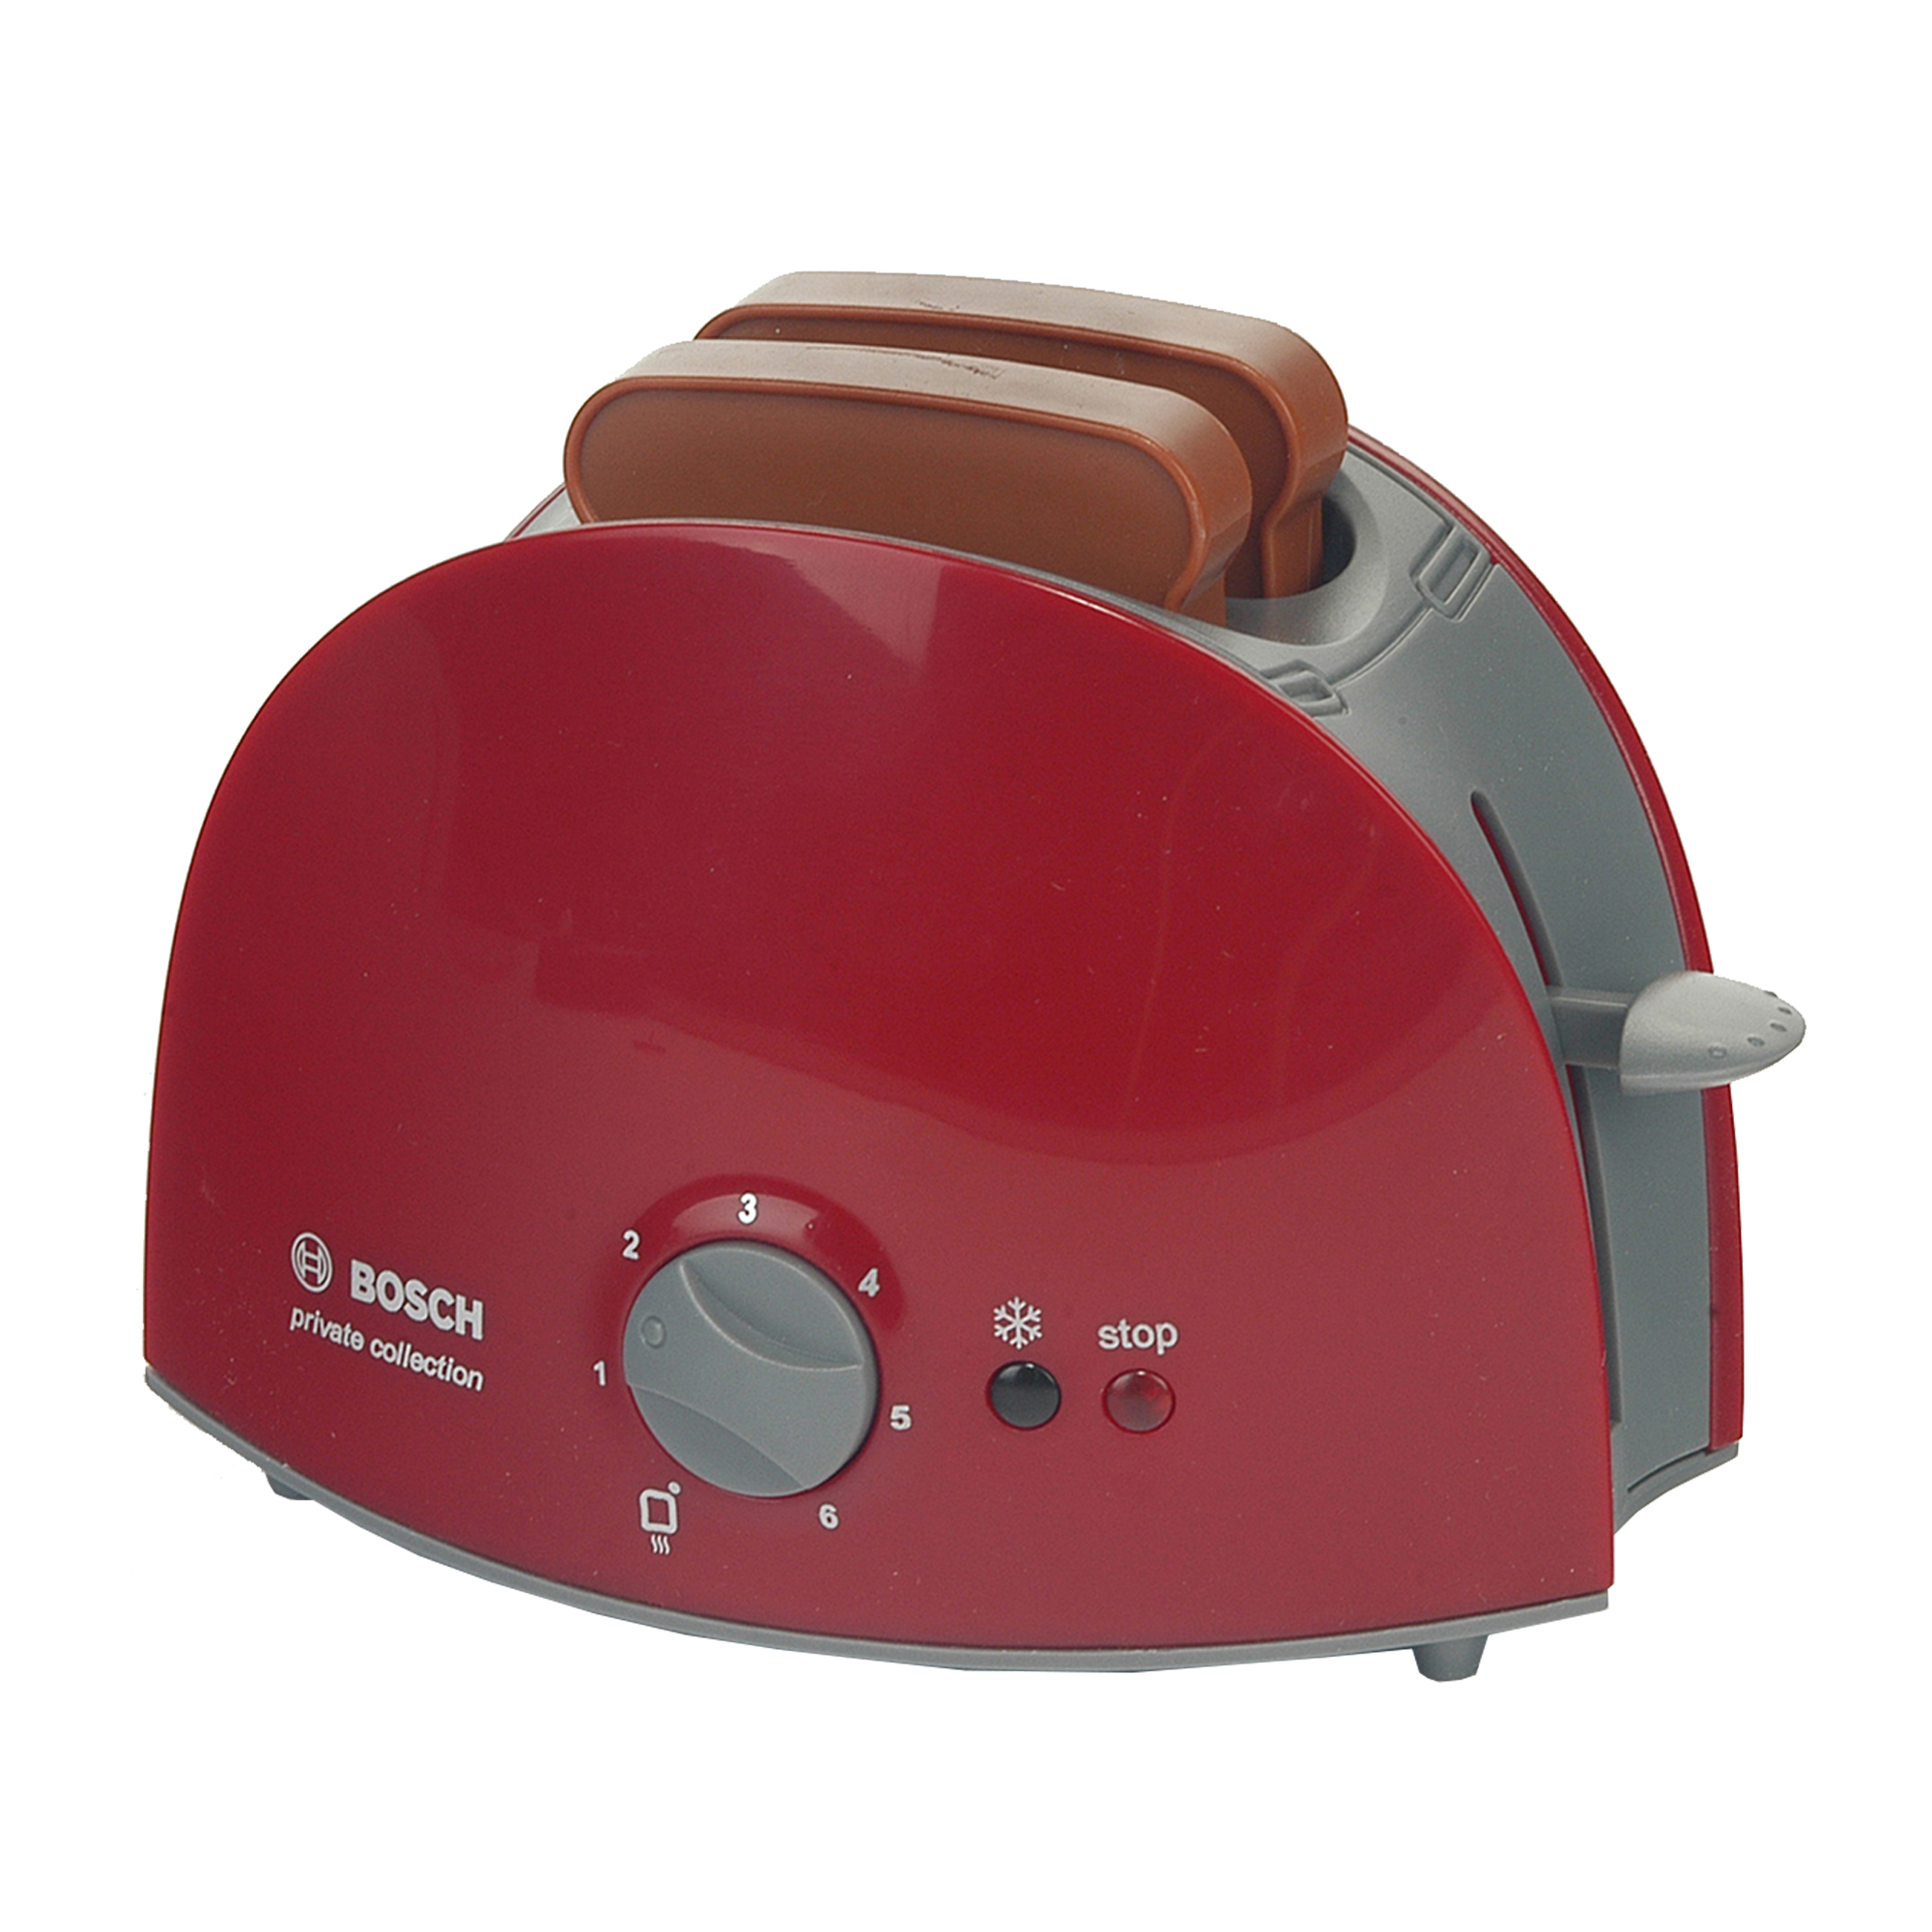 Bosch Children's Toaster